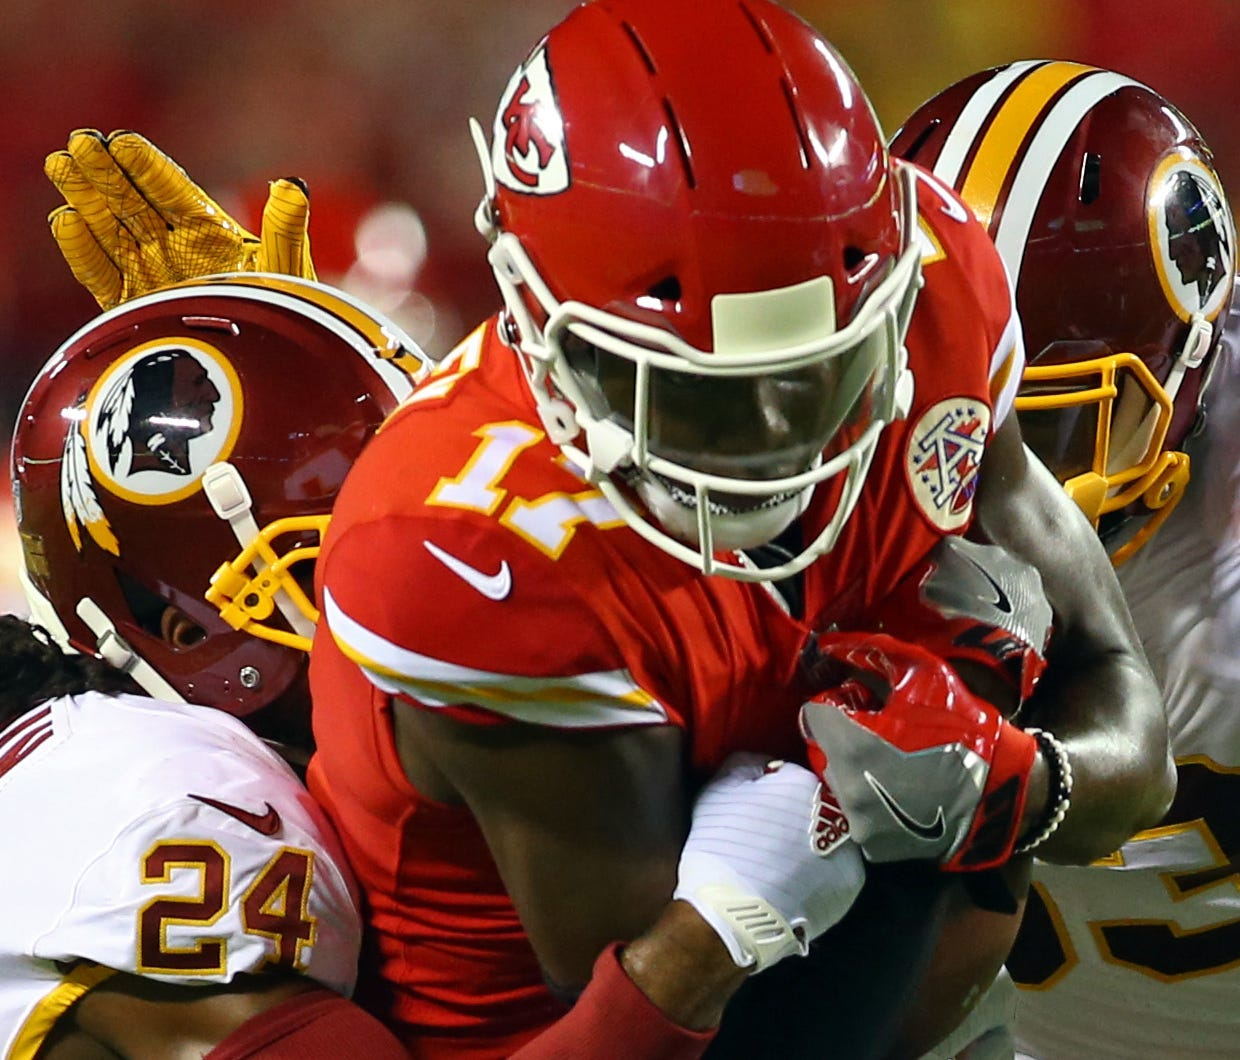 Washington Redskins vs. Kansas City Chiefs in 2017.